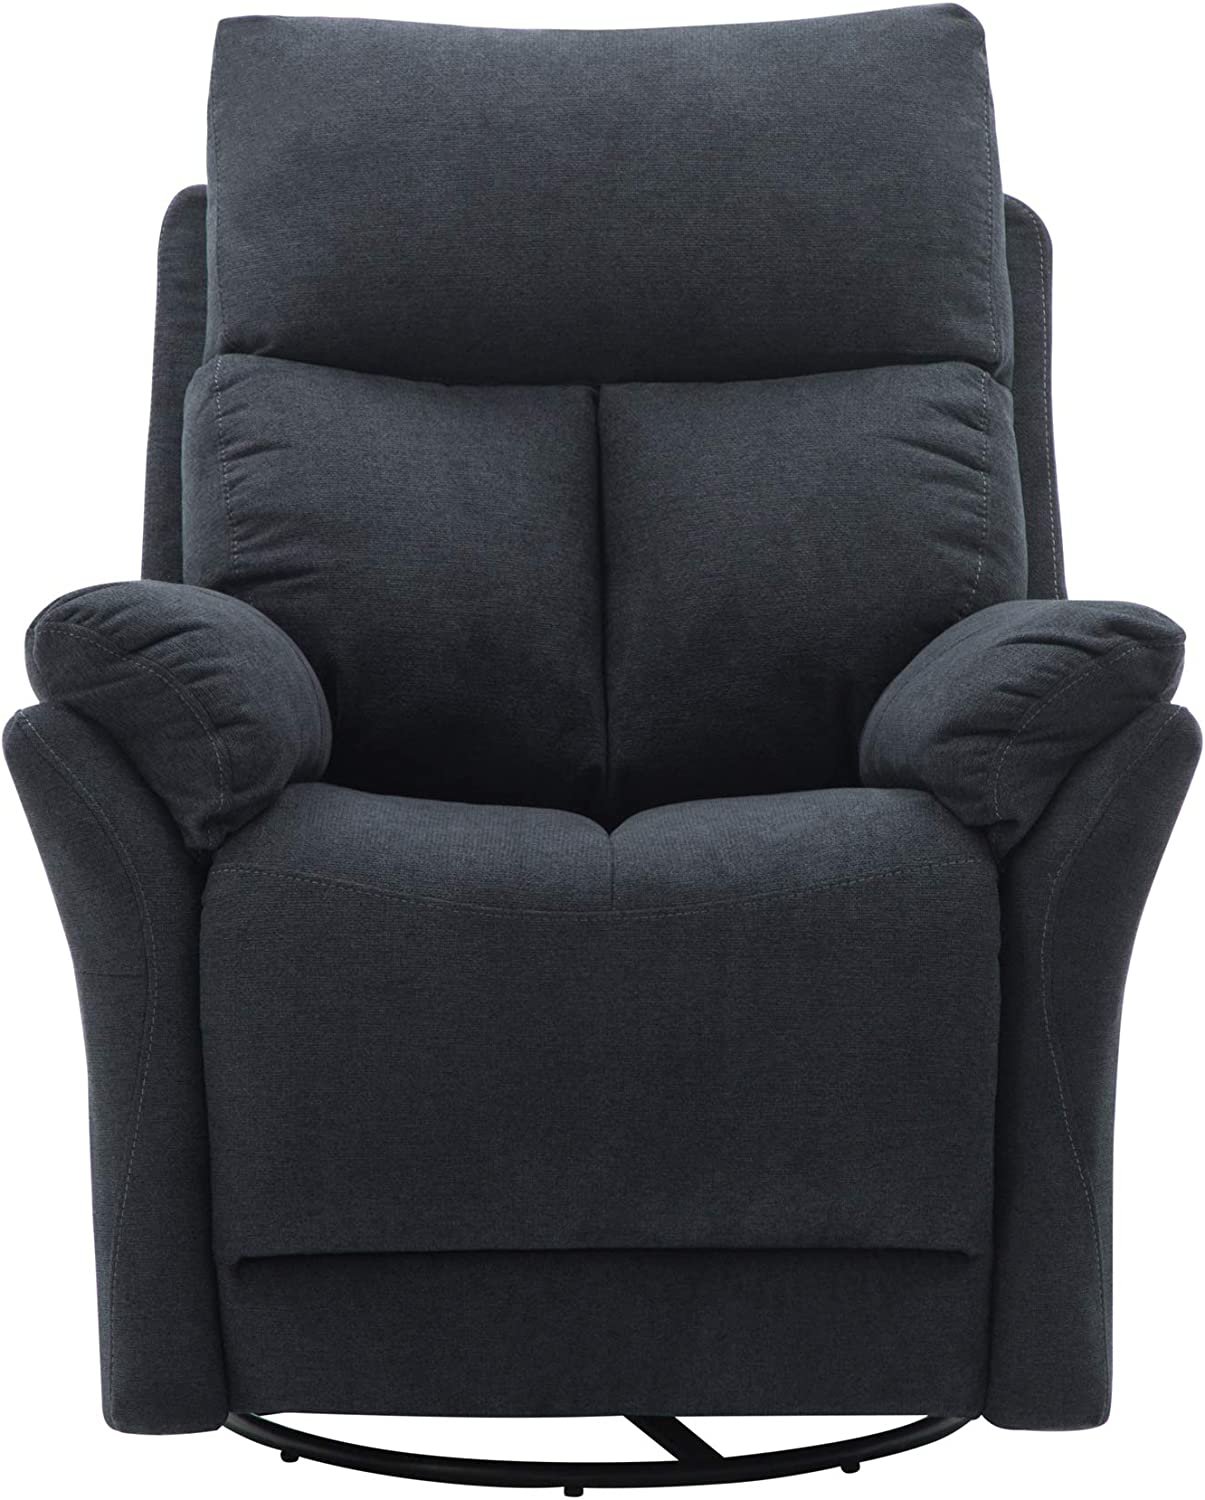 Classic Brands Twinkle Twinkle Popstitch Upholstered Recliner Chair Grey